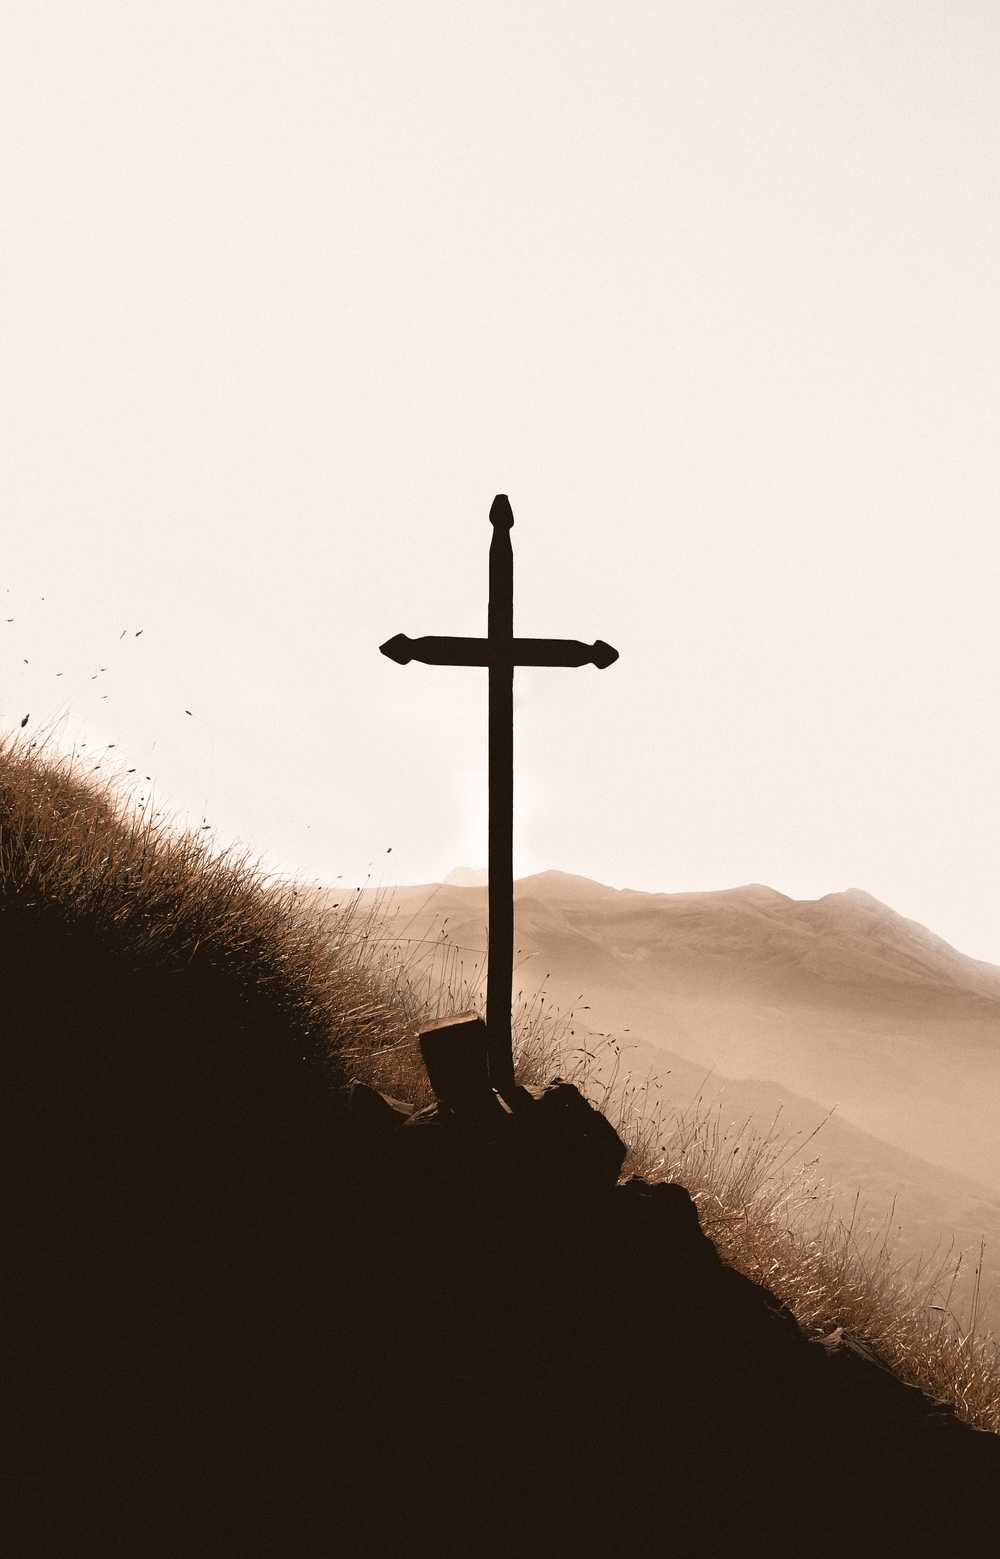 brown wooden cross on mountain during daytime